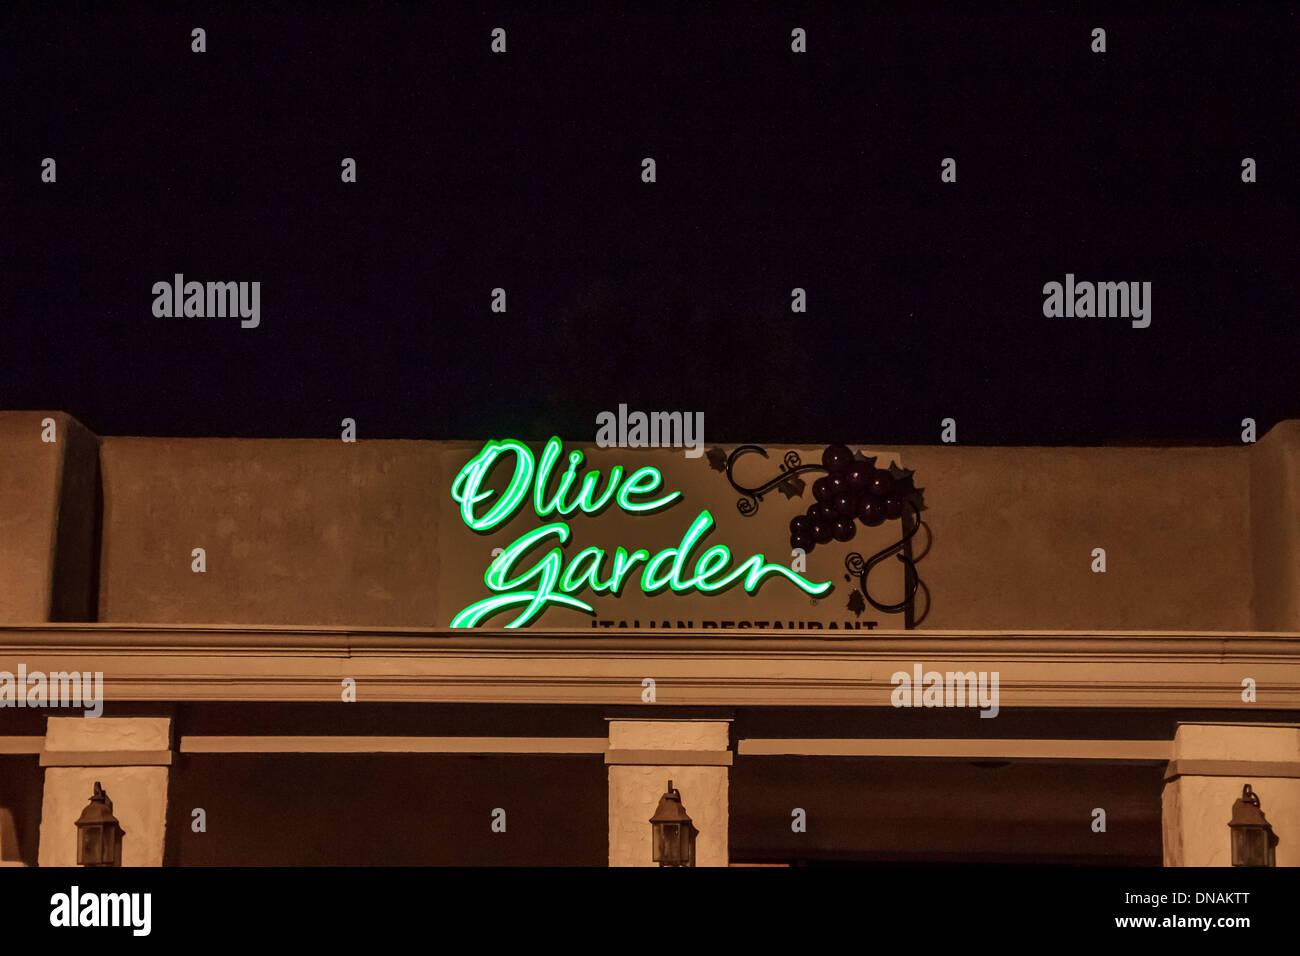 Olive Garden Restaurants Stock Photos & Olive Garden Restaurants ...